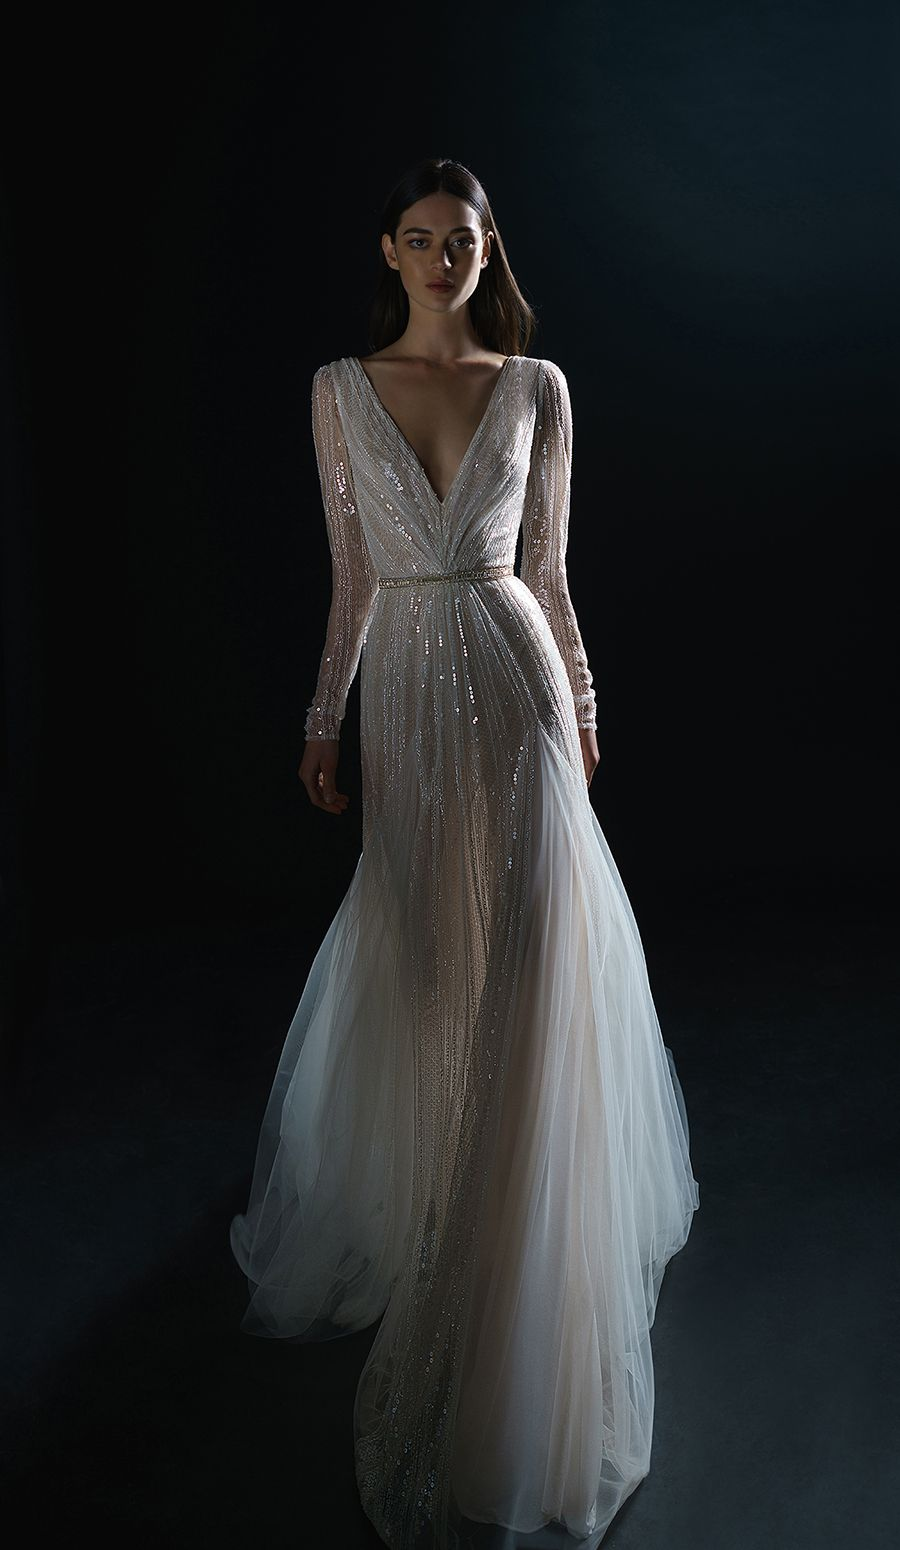 """56d4630d03c7 Sleeve striped beaded fabric dress // Inbal Dror debuted a new diffusion  line """"for every bride who wants an Inbal Dror dress, even if she can't do  couture""""."""